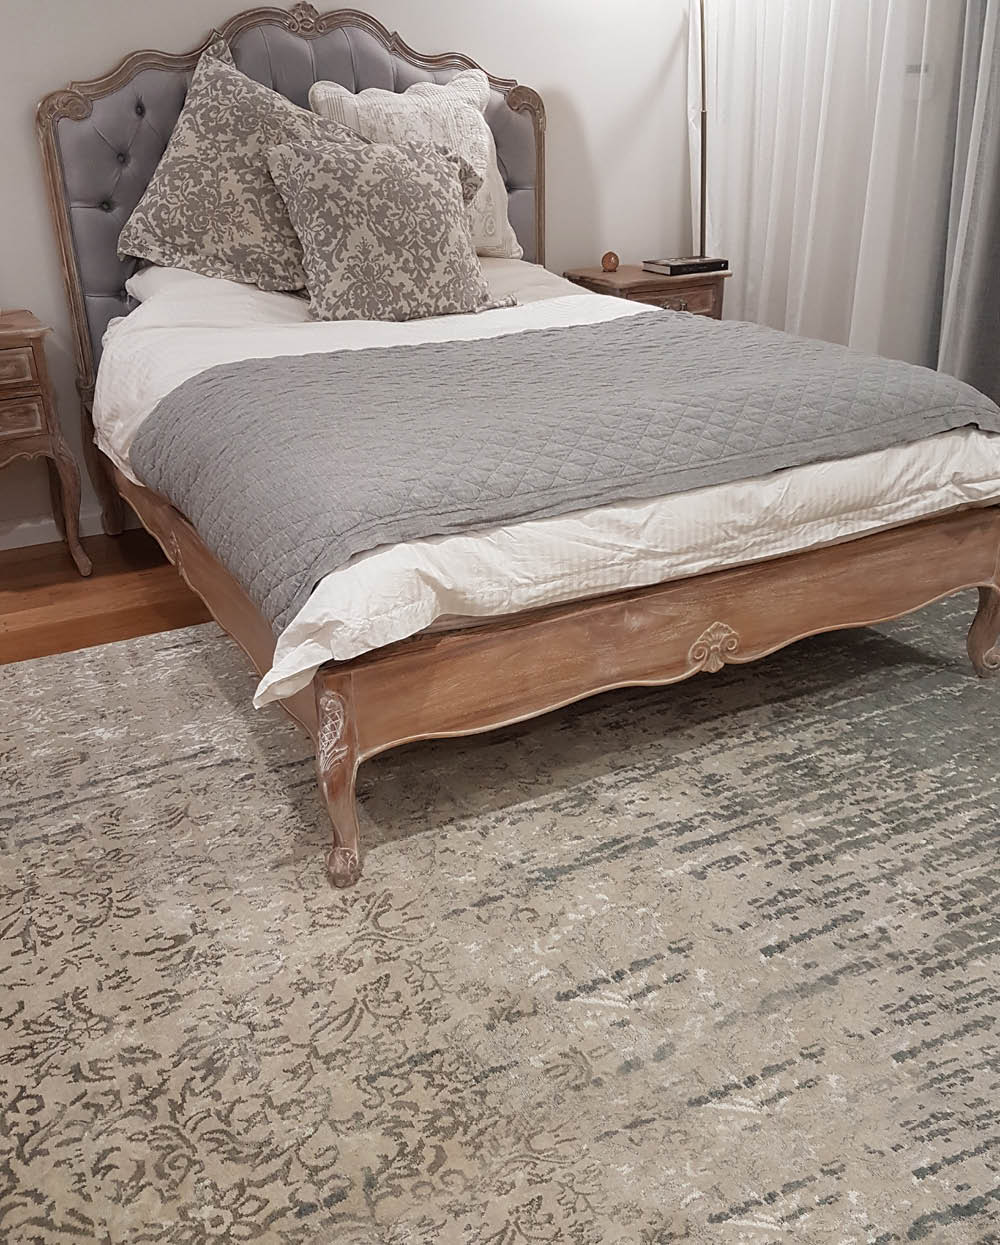 Rugs_Residential_Perth_Osborne_Park_Rug_Seller_ Designer_Rugs_CommercialRugs_UniqueRugs_QualityRugs_Handmade_Homewares_Interiors_TraditionalRugs_ModernRugs_TribalRugs_OverSizedRugs_ABOUT_Hero